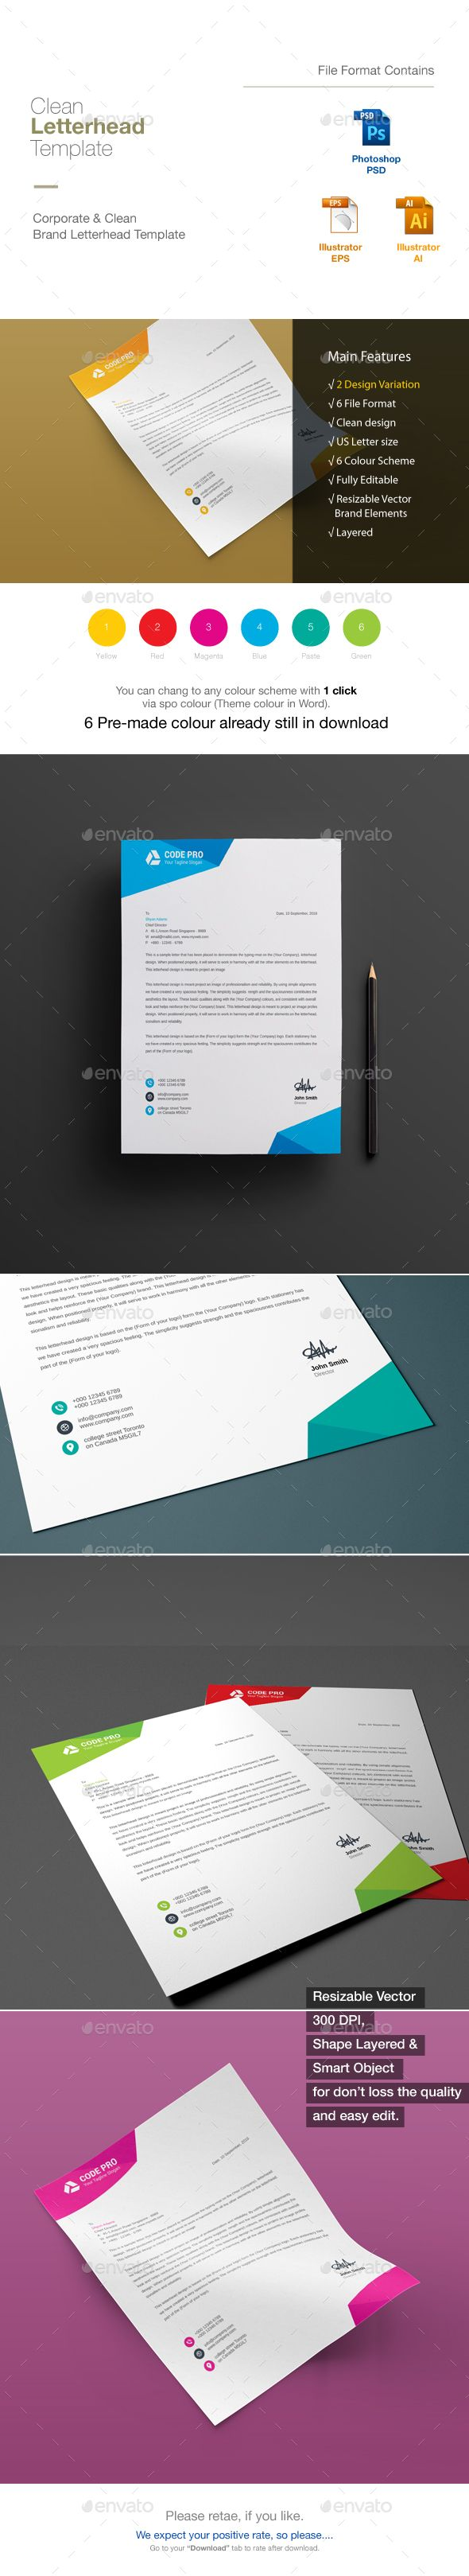 22 best letterhead template images on pinterest letterhead letterhead spiritdancerdesigns Choice Image